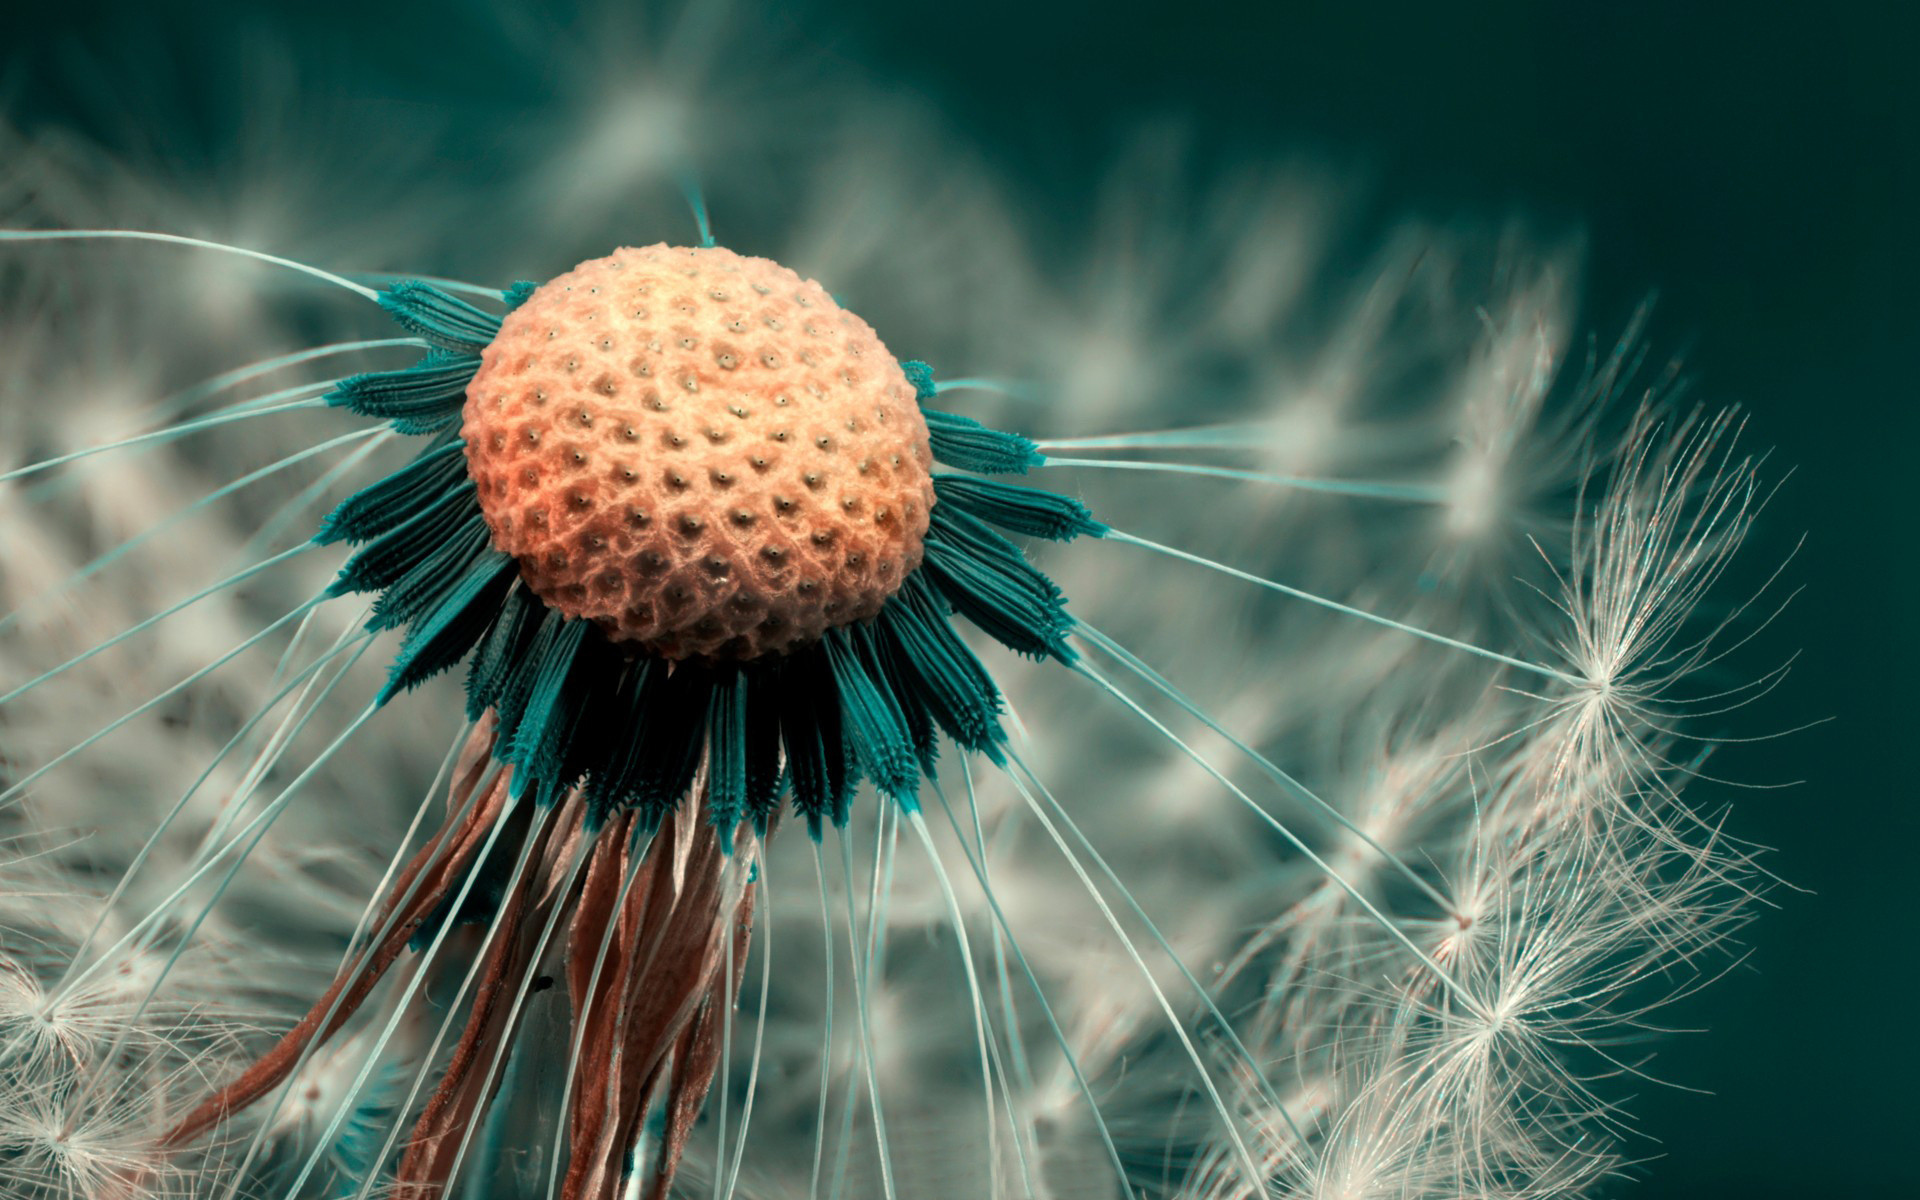 Dandelion HD Wallpaper 1920×1080 Dandelion HD Wallpaper 1920×1200